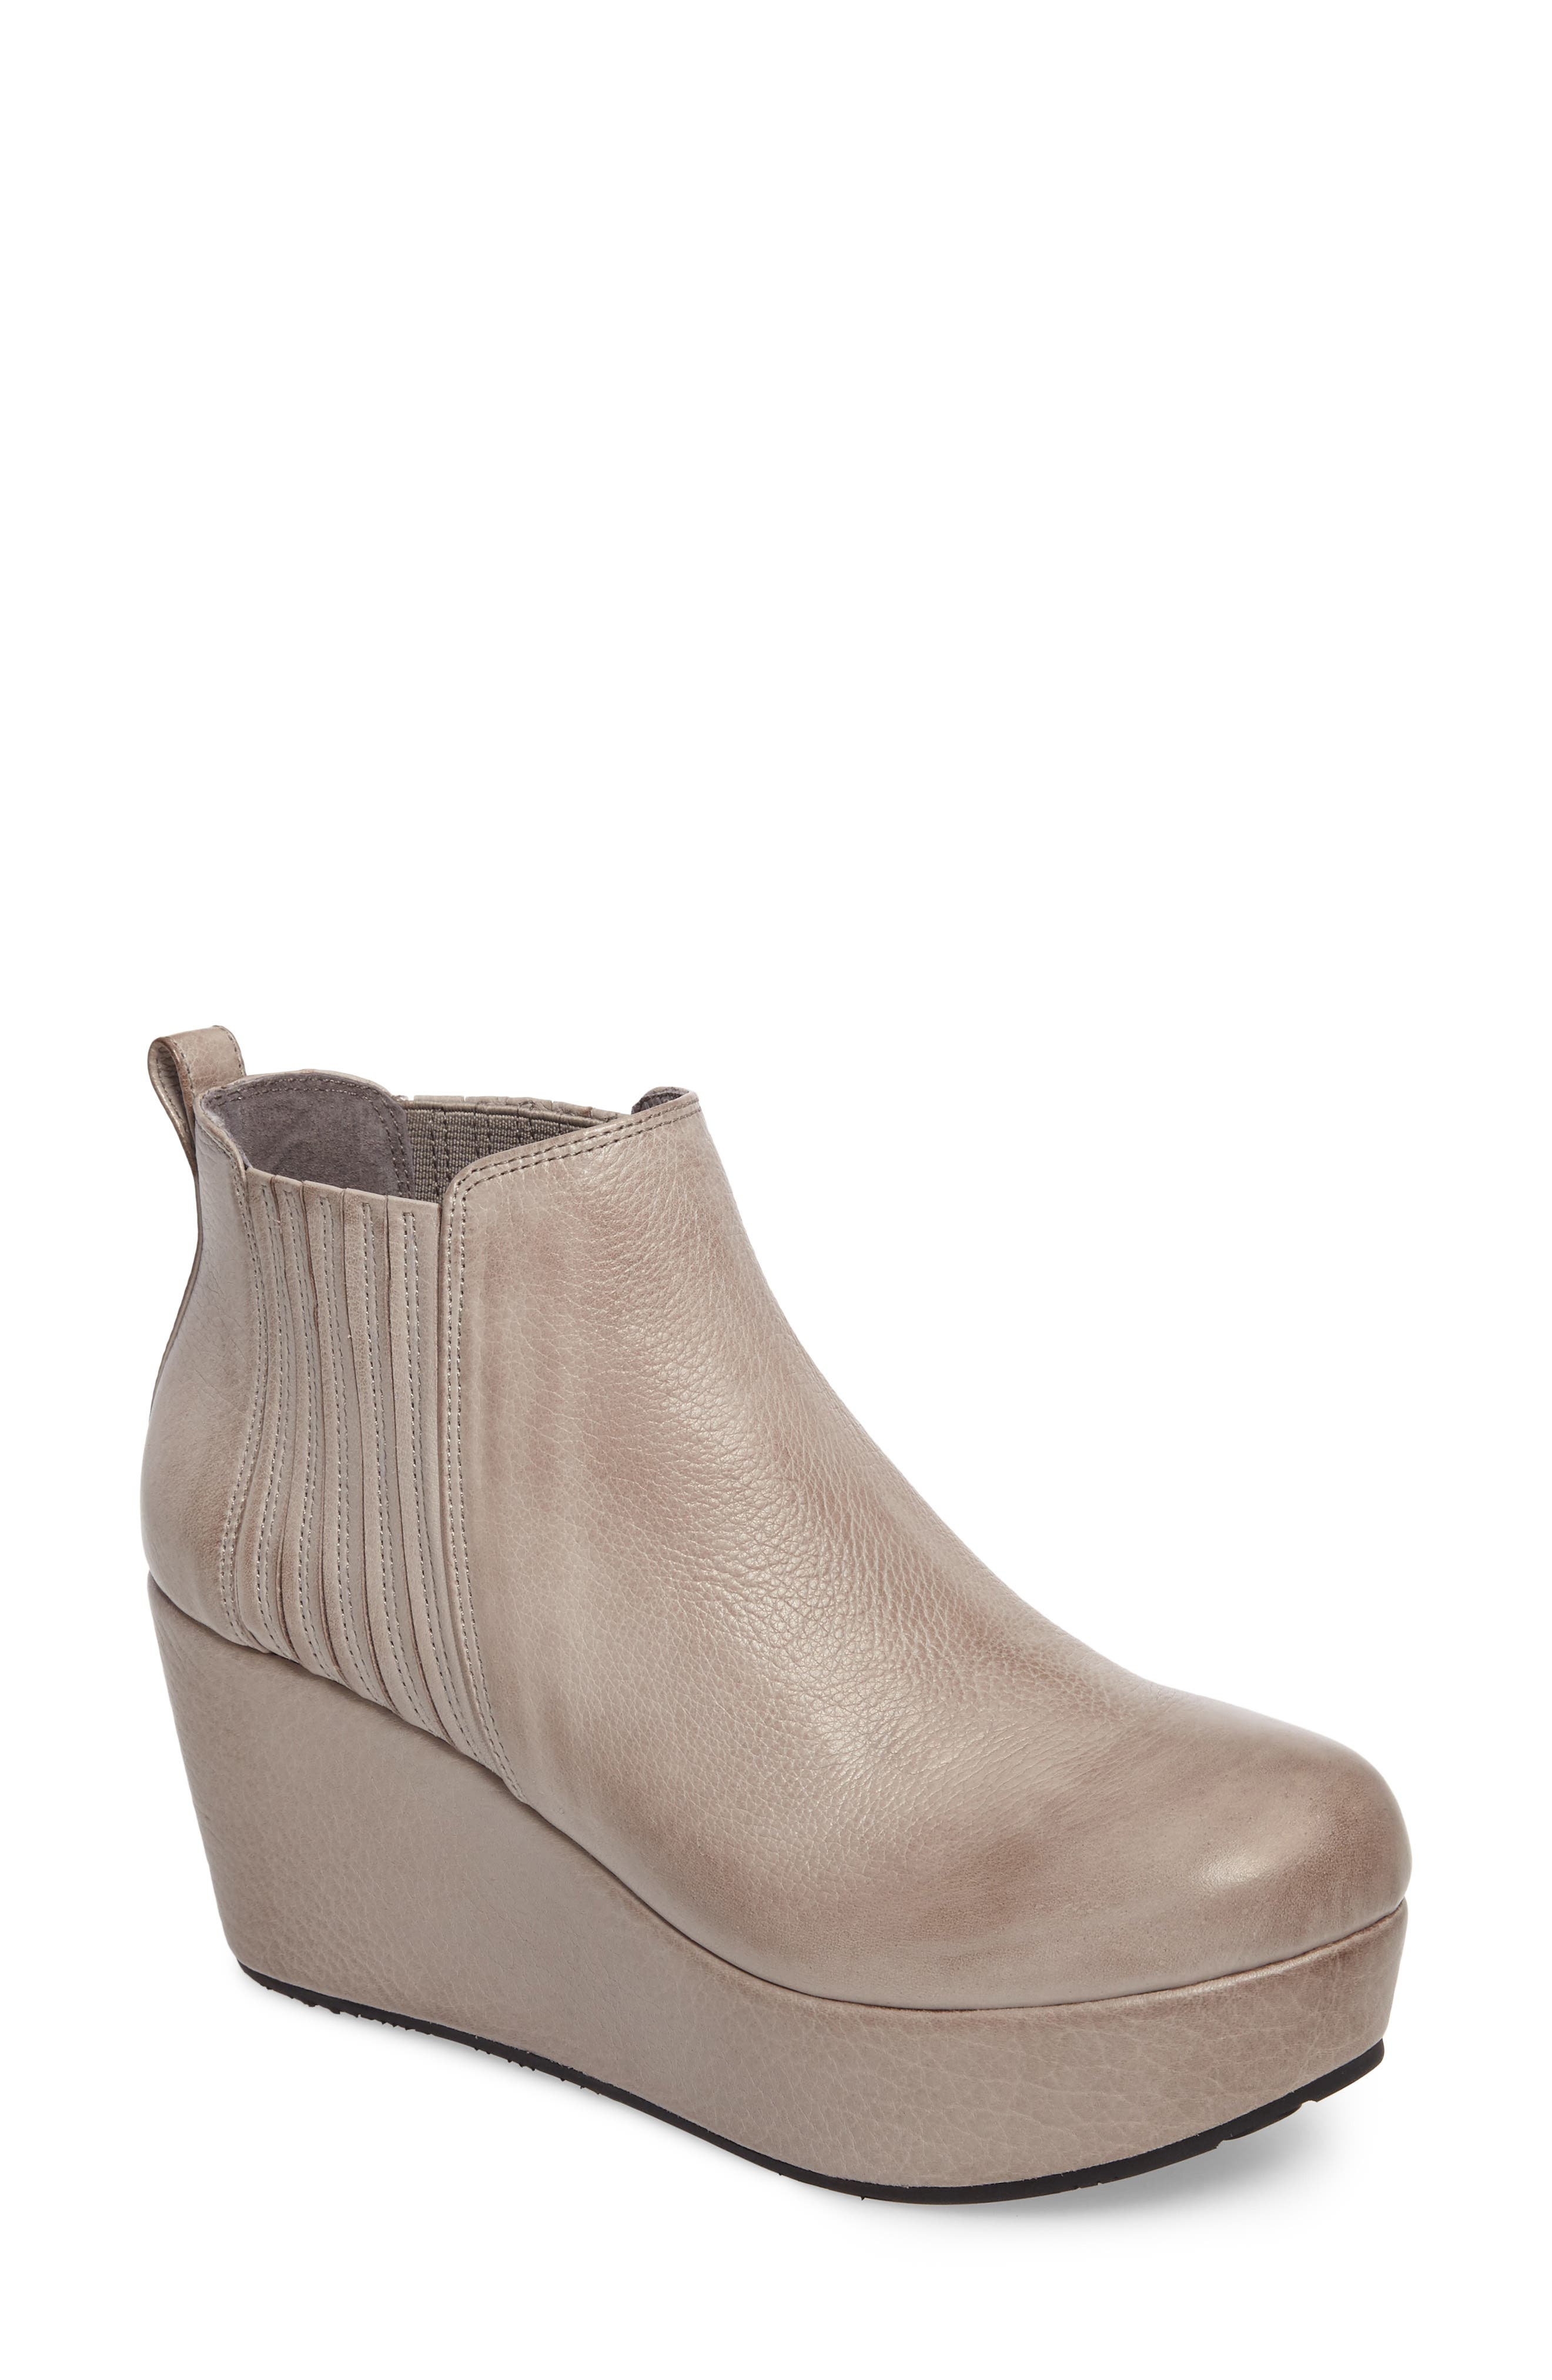 Walden Wedge Bootie,                             Main thumbnail 1, color,                             GREY LEATHER